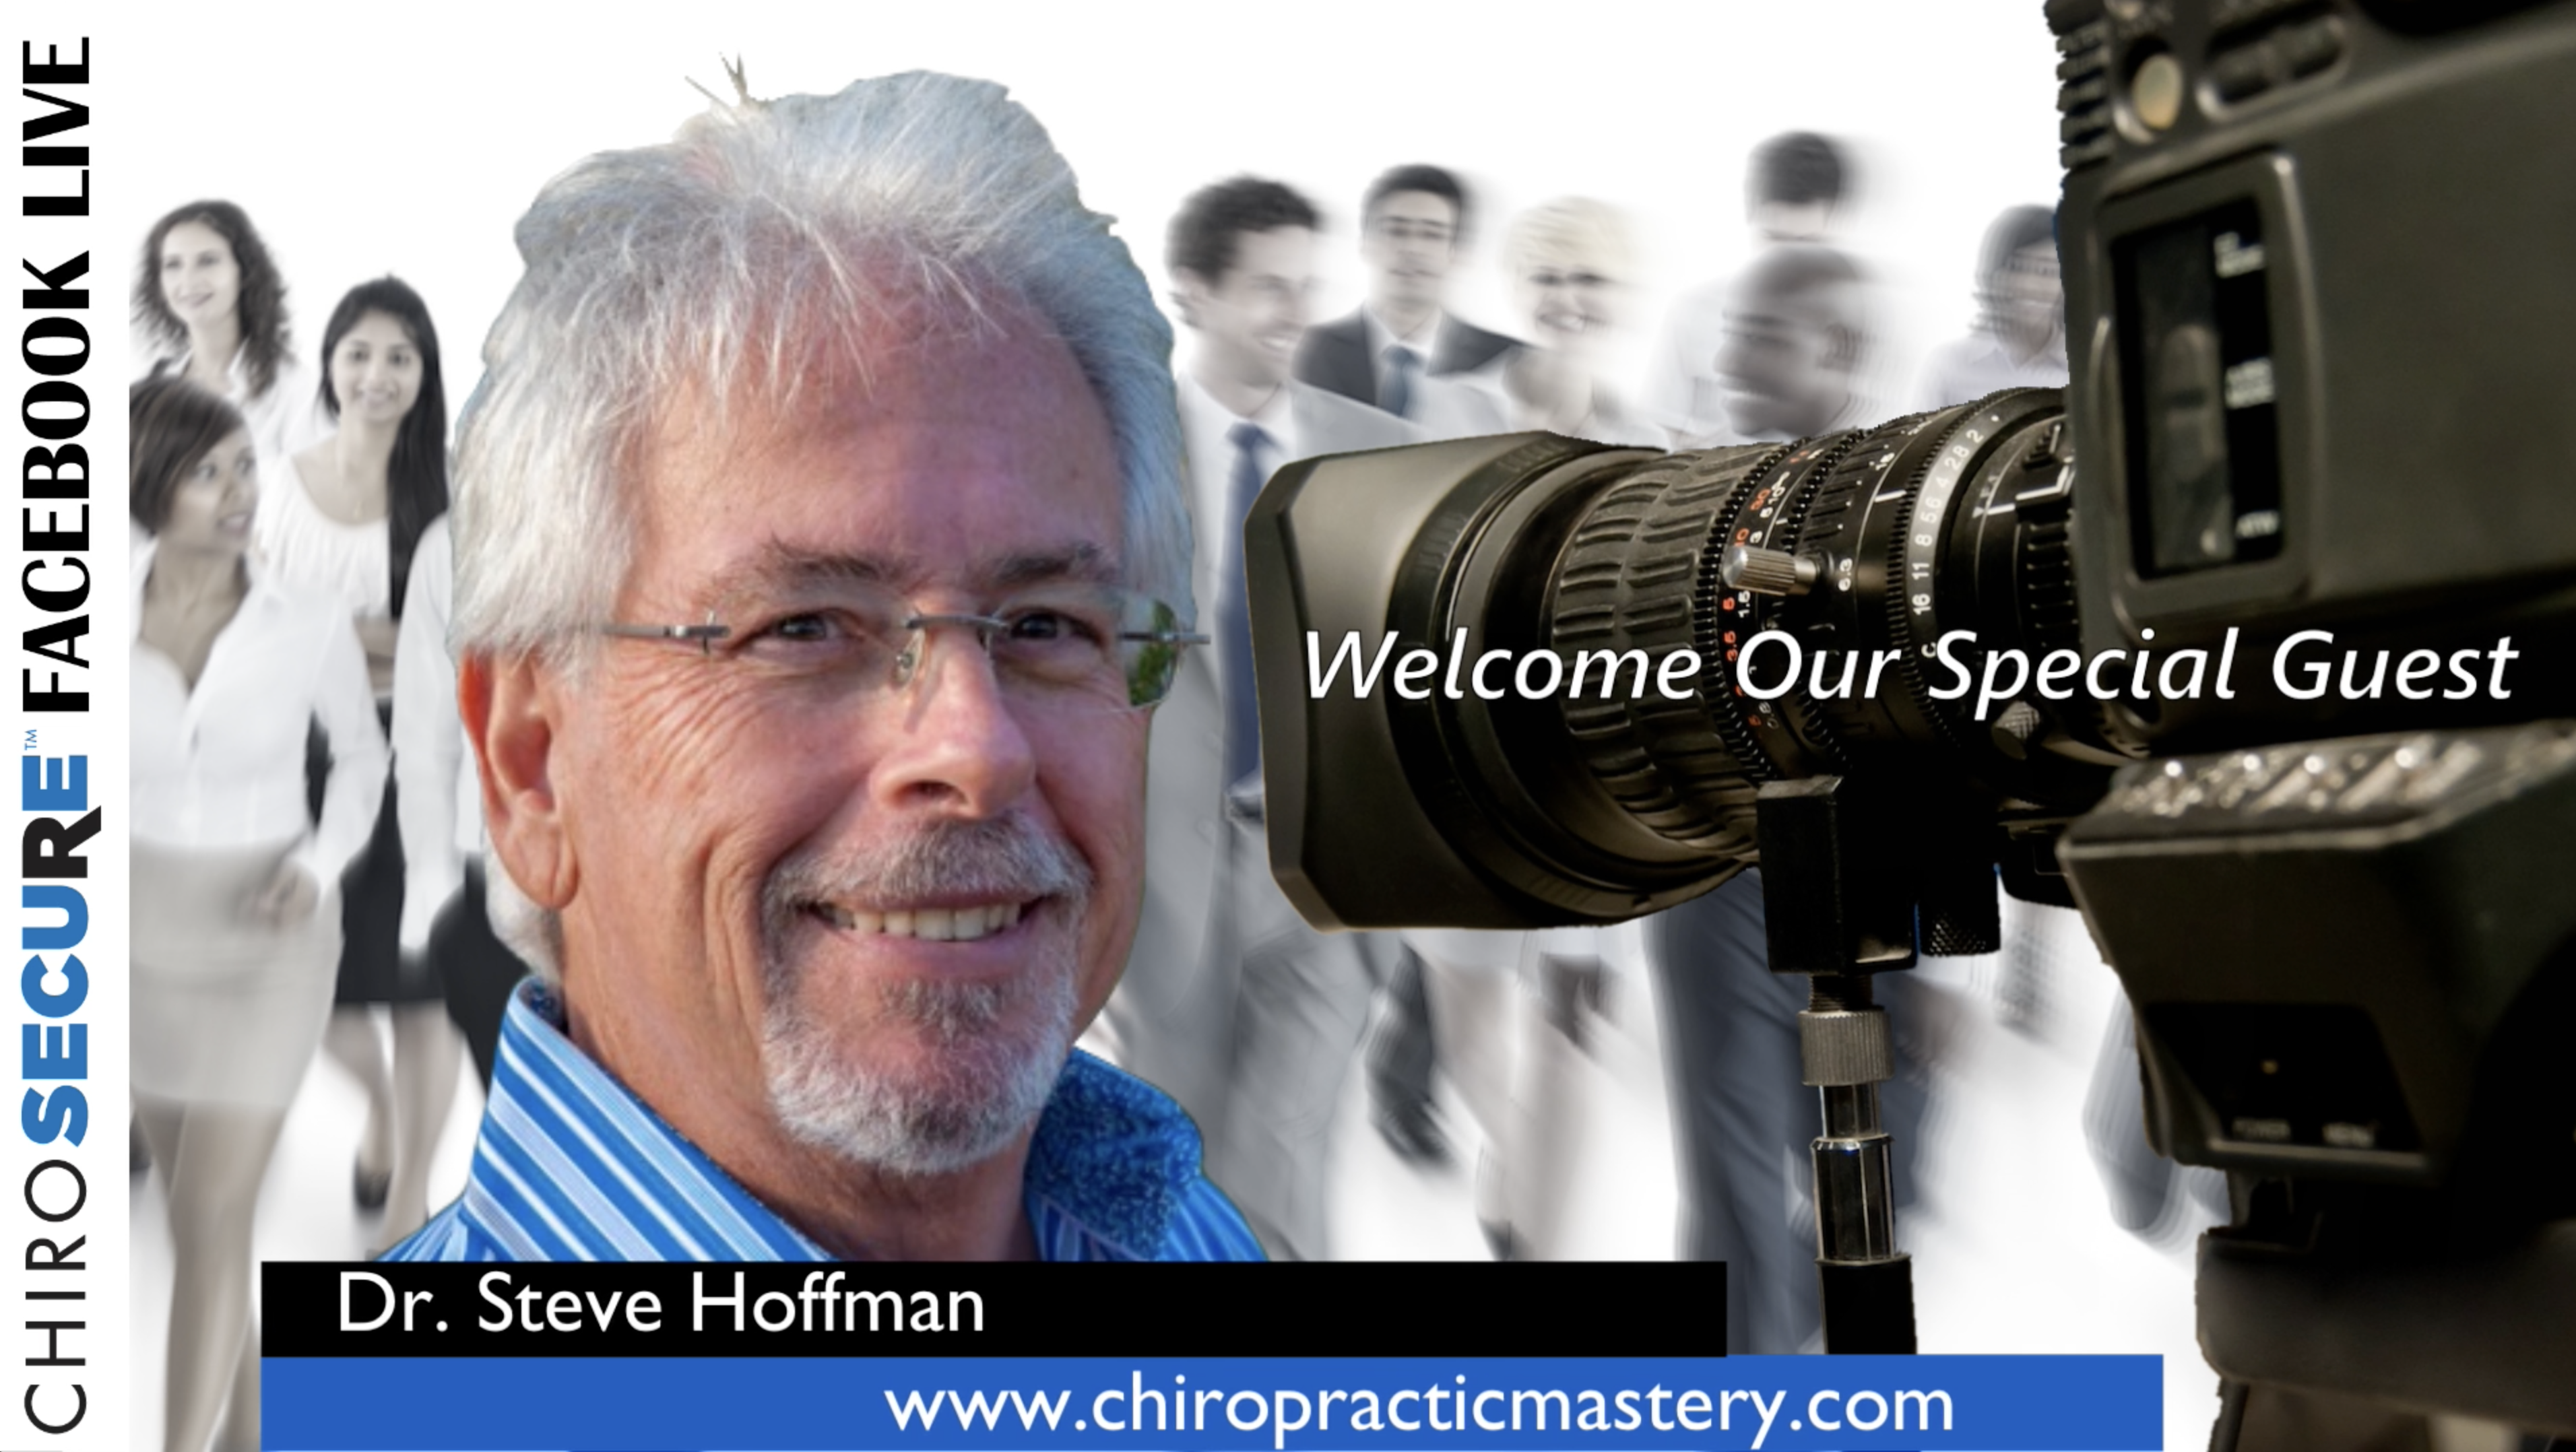 Dr. Steve Hoffman Chiropractic Mastery Thumbnail